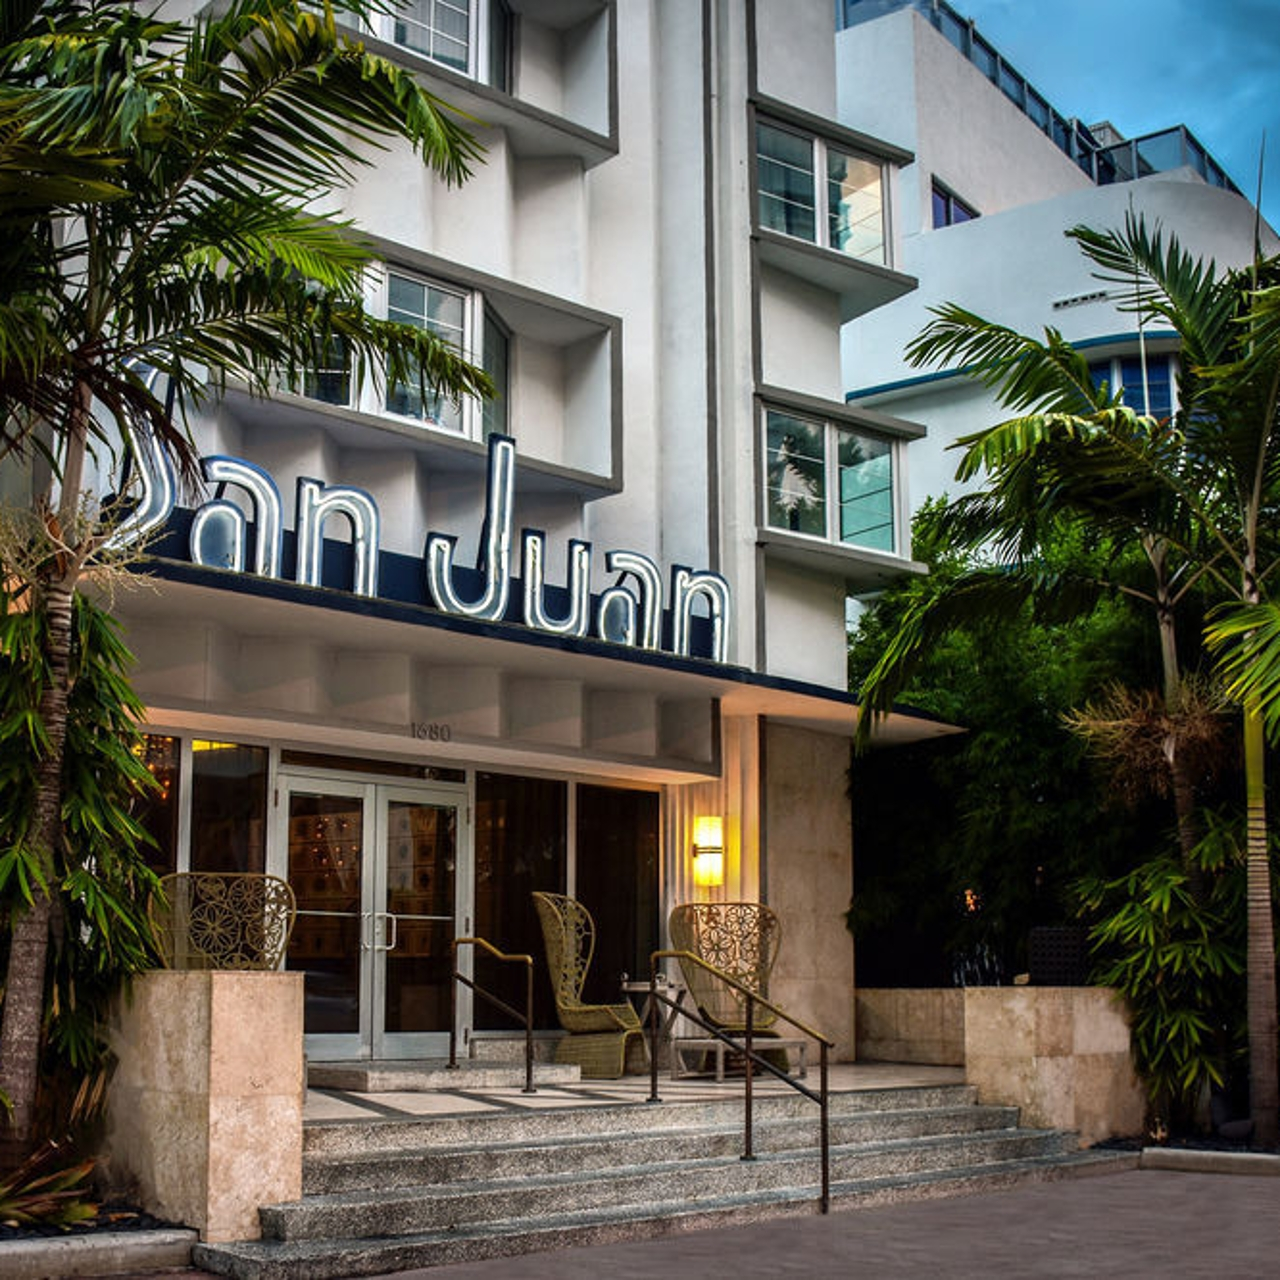 Hrs Star Hotel In Miami Beach Florida